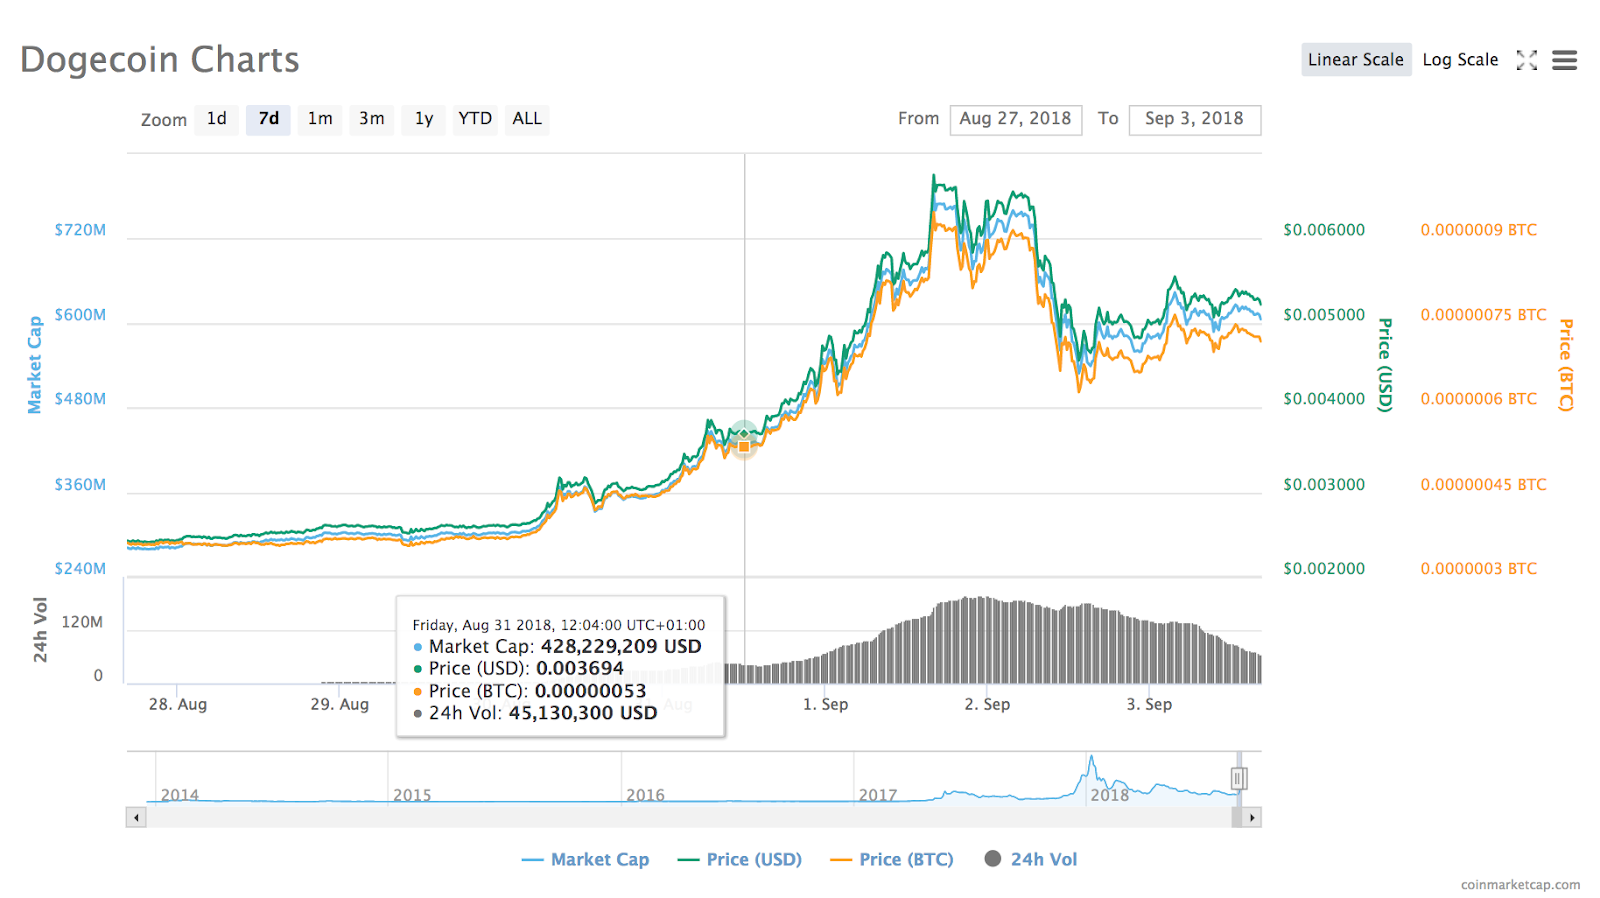 Dogecoin's 7-day price chart